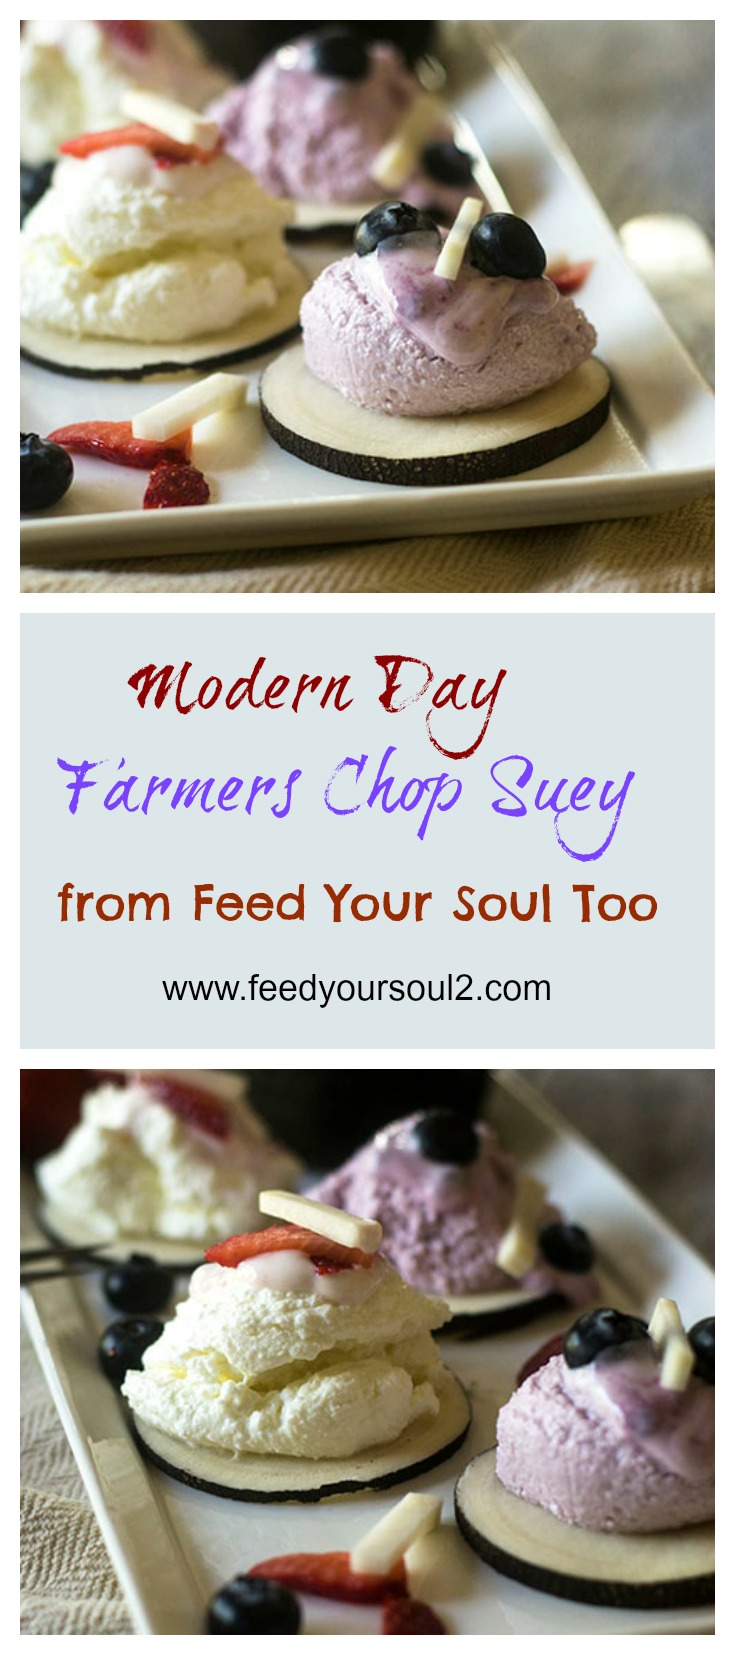 Modern Day Farmers Chop Suey #Healthy #promotio #probiotic | feedyoursoul2.com